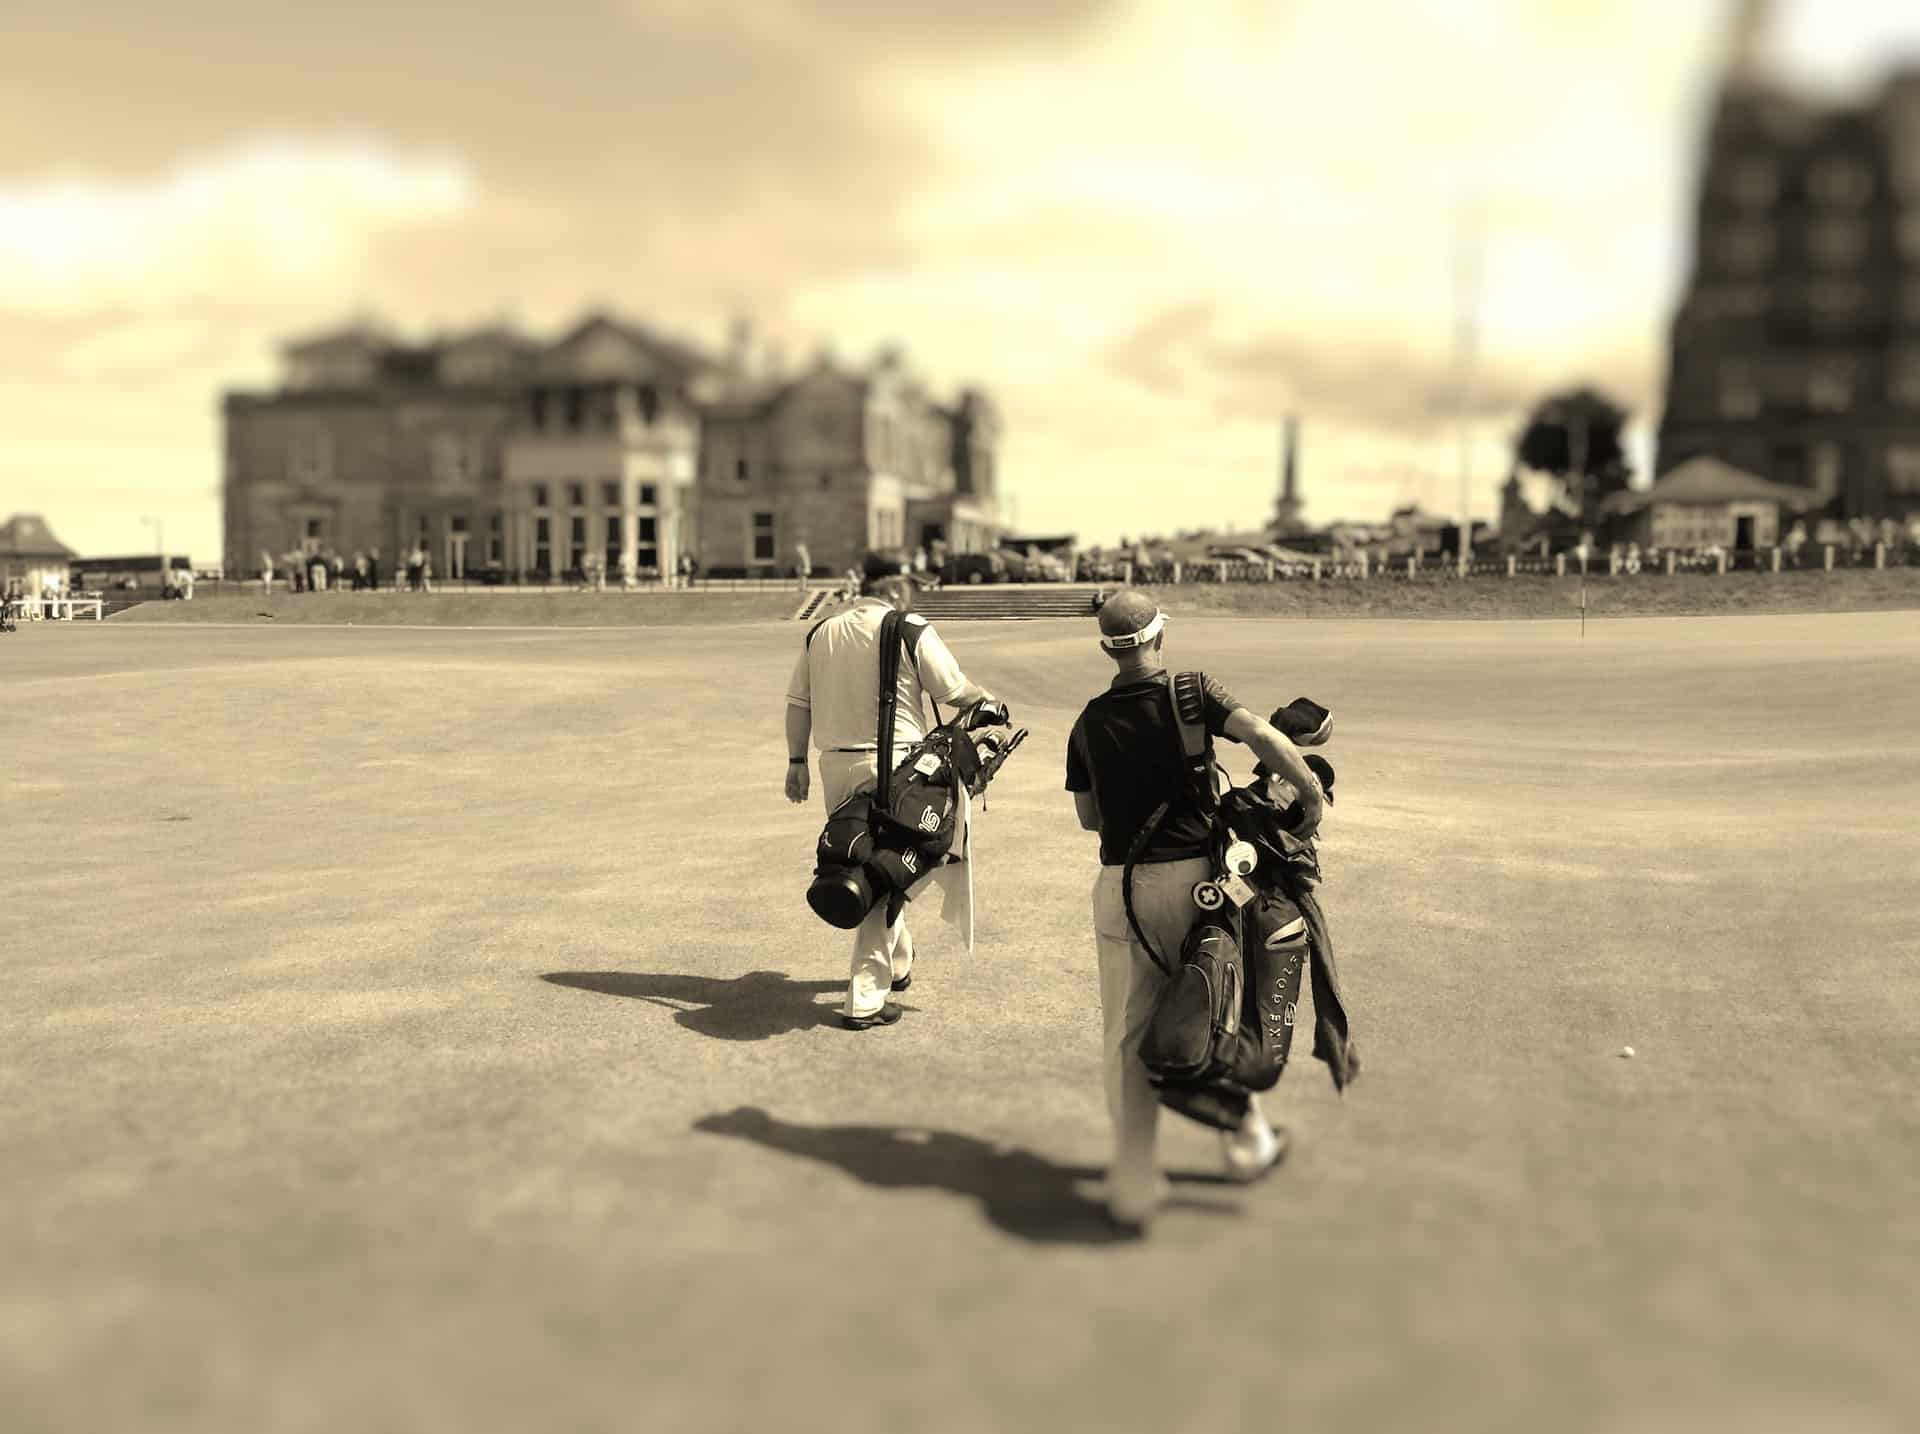 Old Course St Andrews, 18th green approach, 2 golfers